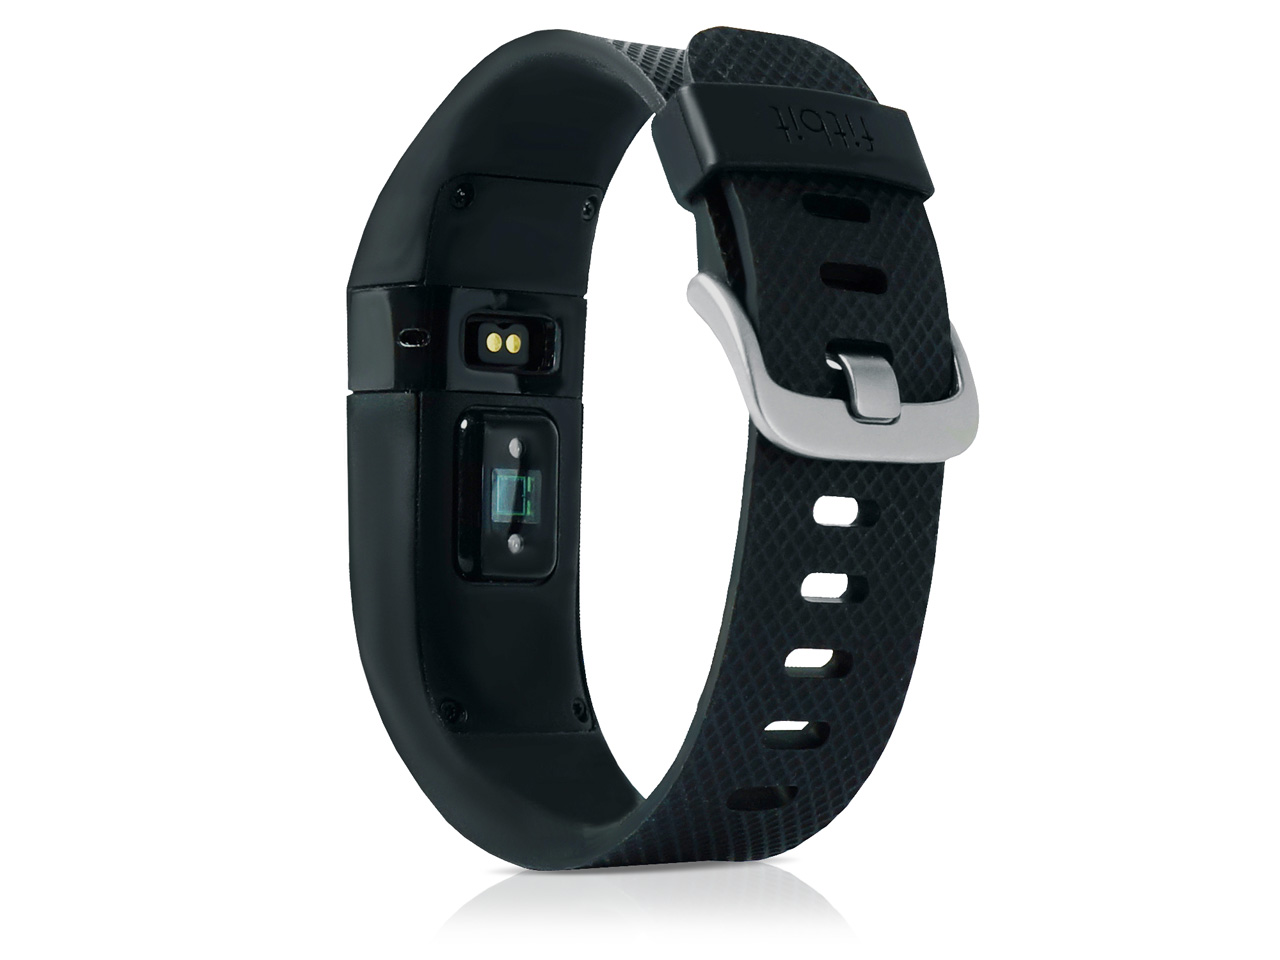 fitbit charge hr heart rate activity tracker. Black Bedroom Furniture Sets. Home Design Ideas